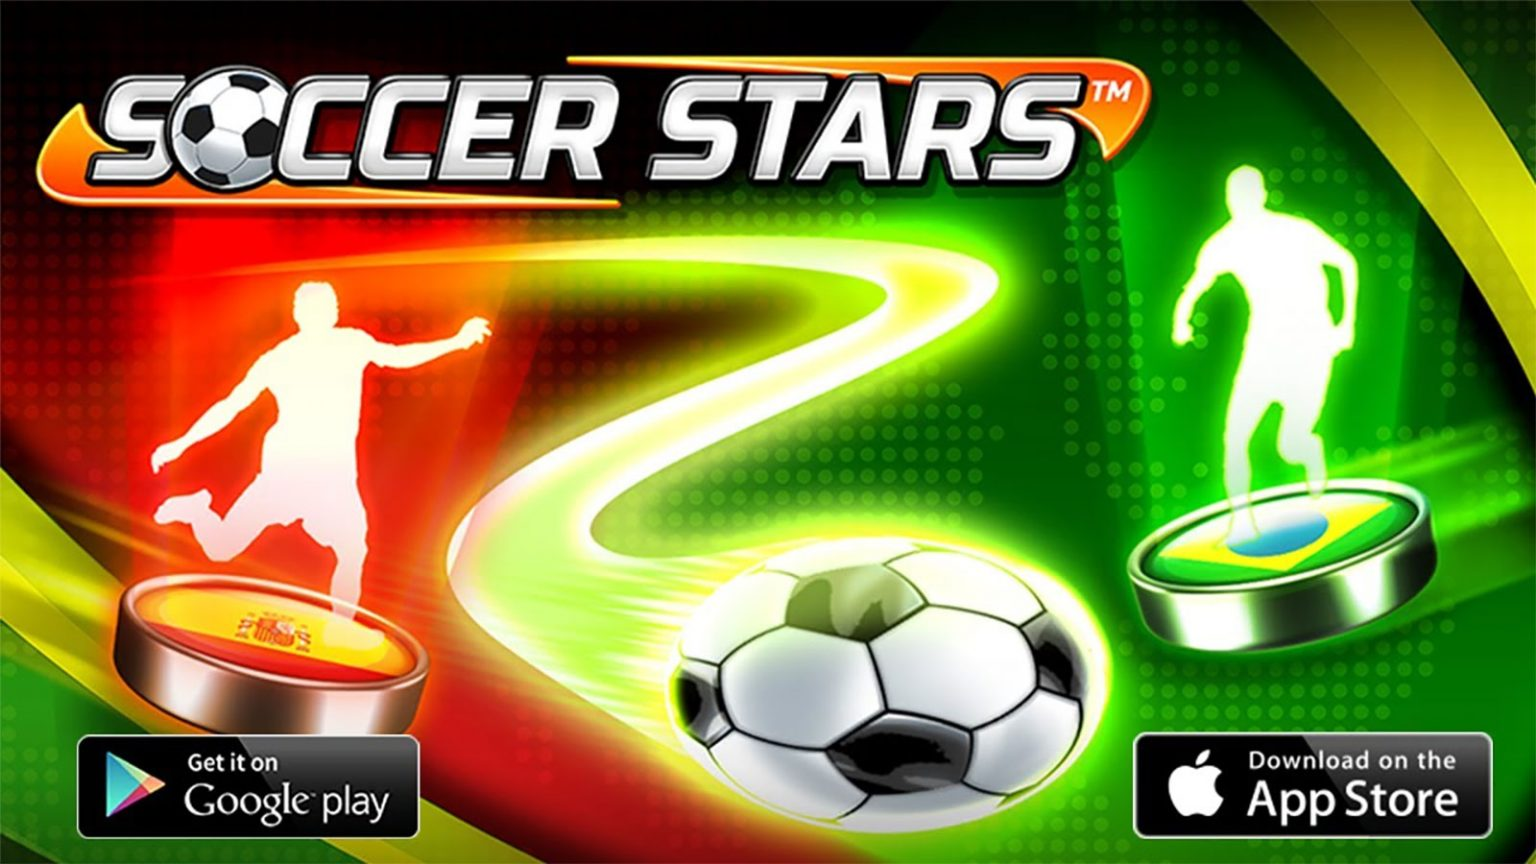 soccer stars unlimited coins apk download